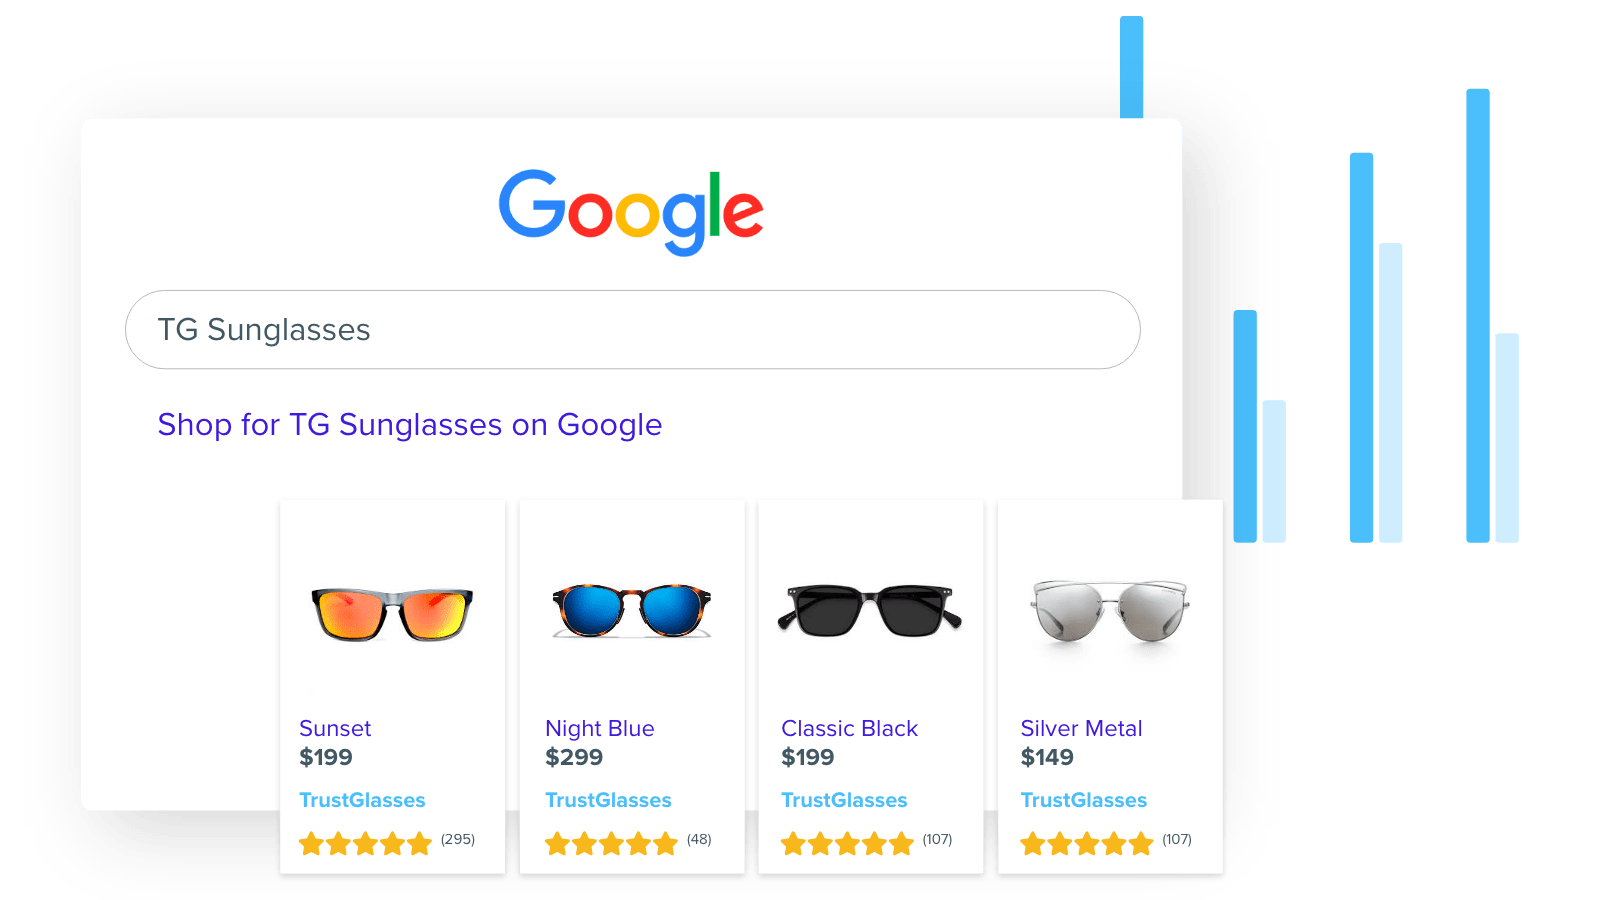 Your reviews are optimized for Search Engine Optimization (SEO)